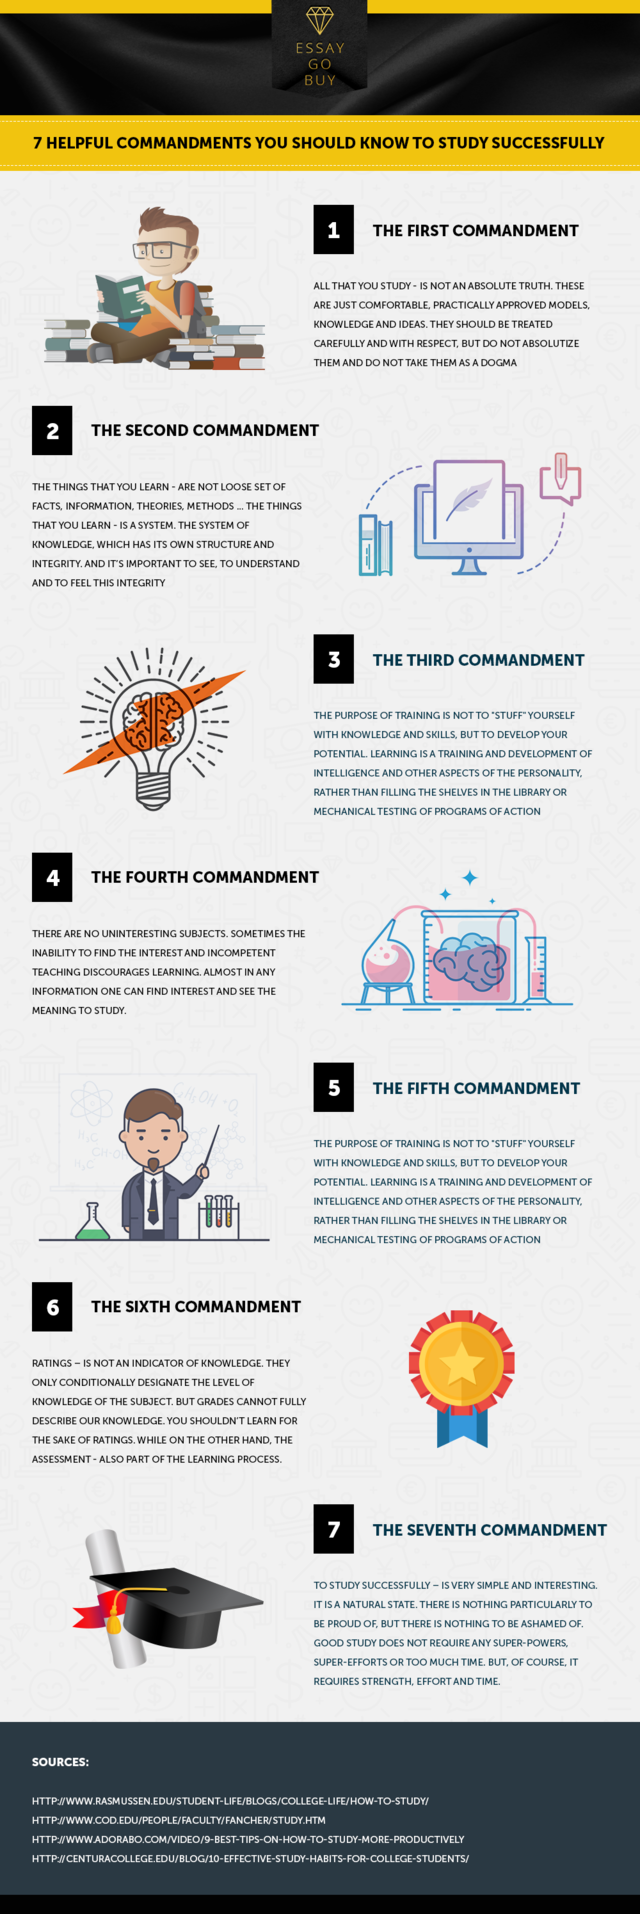 7 helpful commandments you should know to study successfully